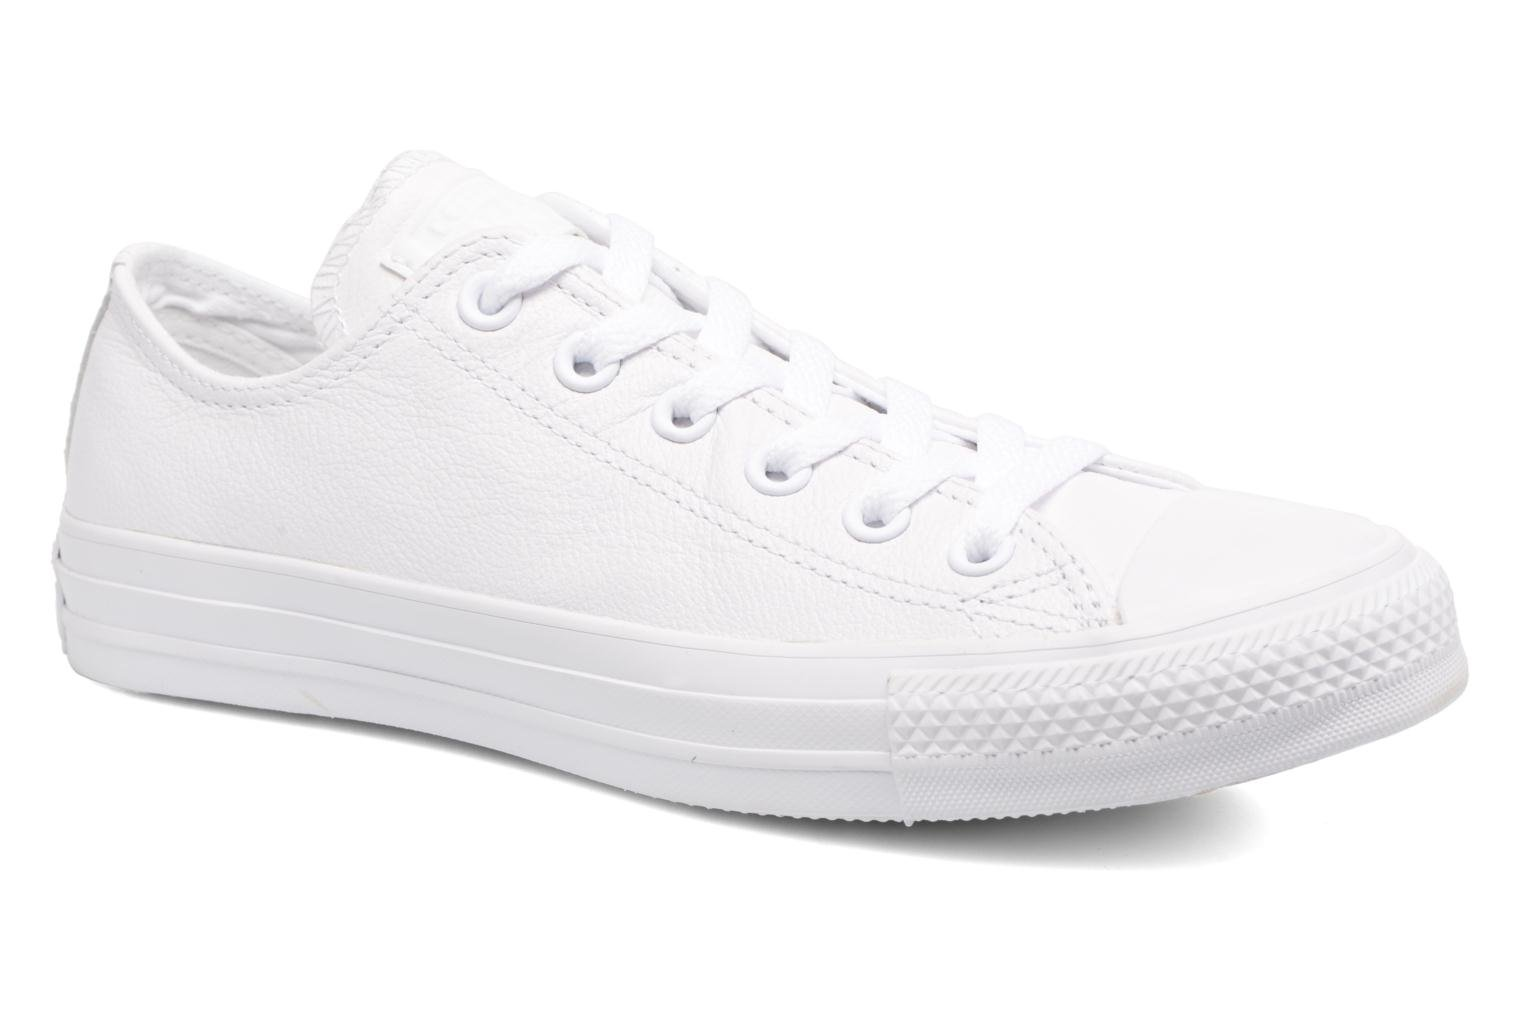 converse chuck taylor all star monochrome leather ox w